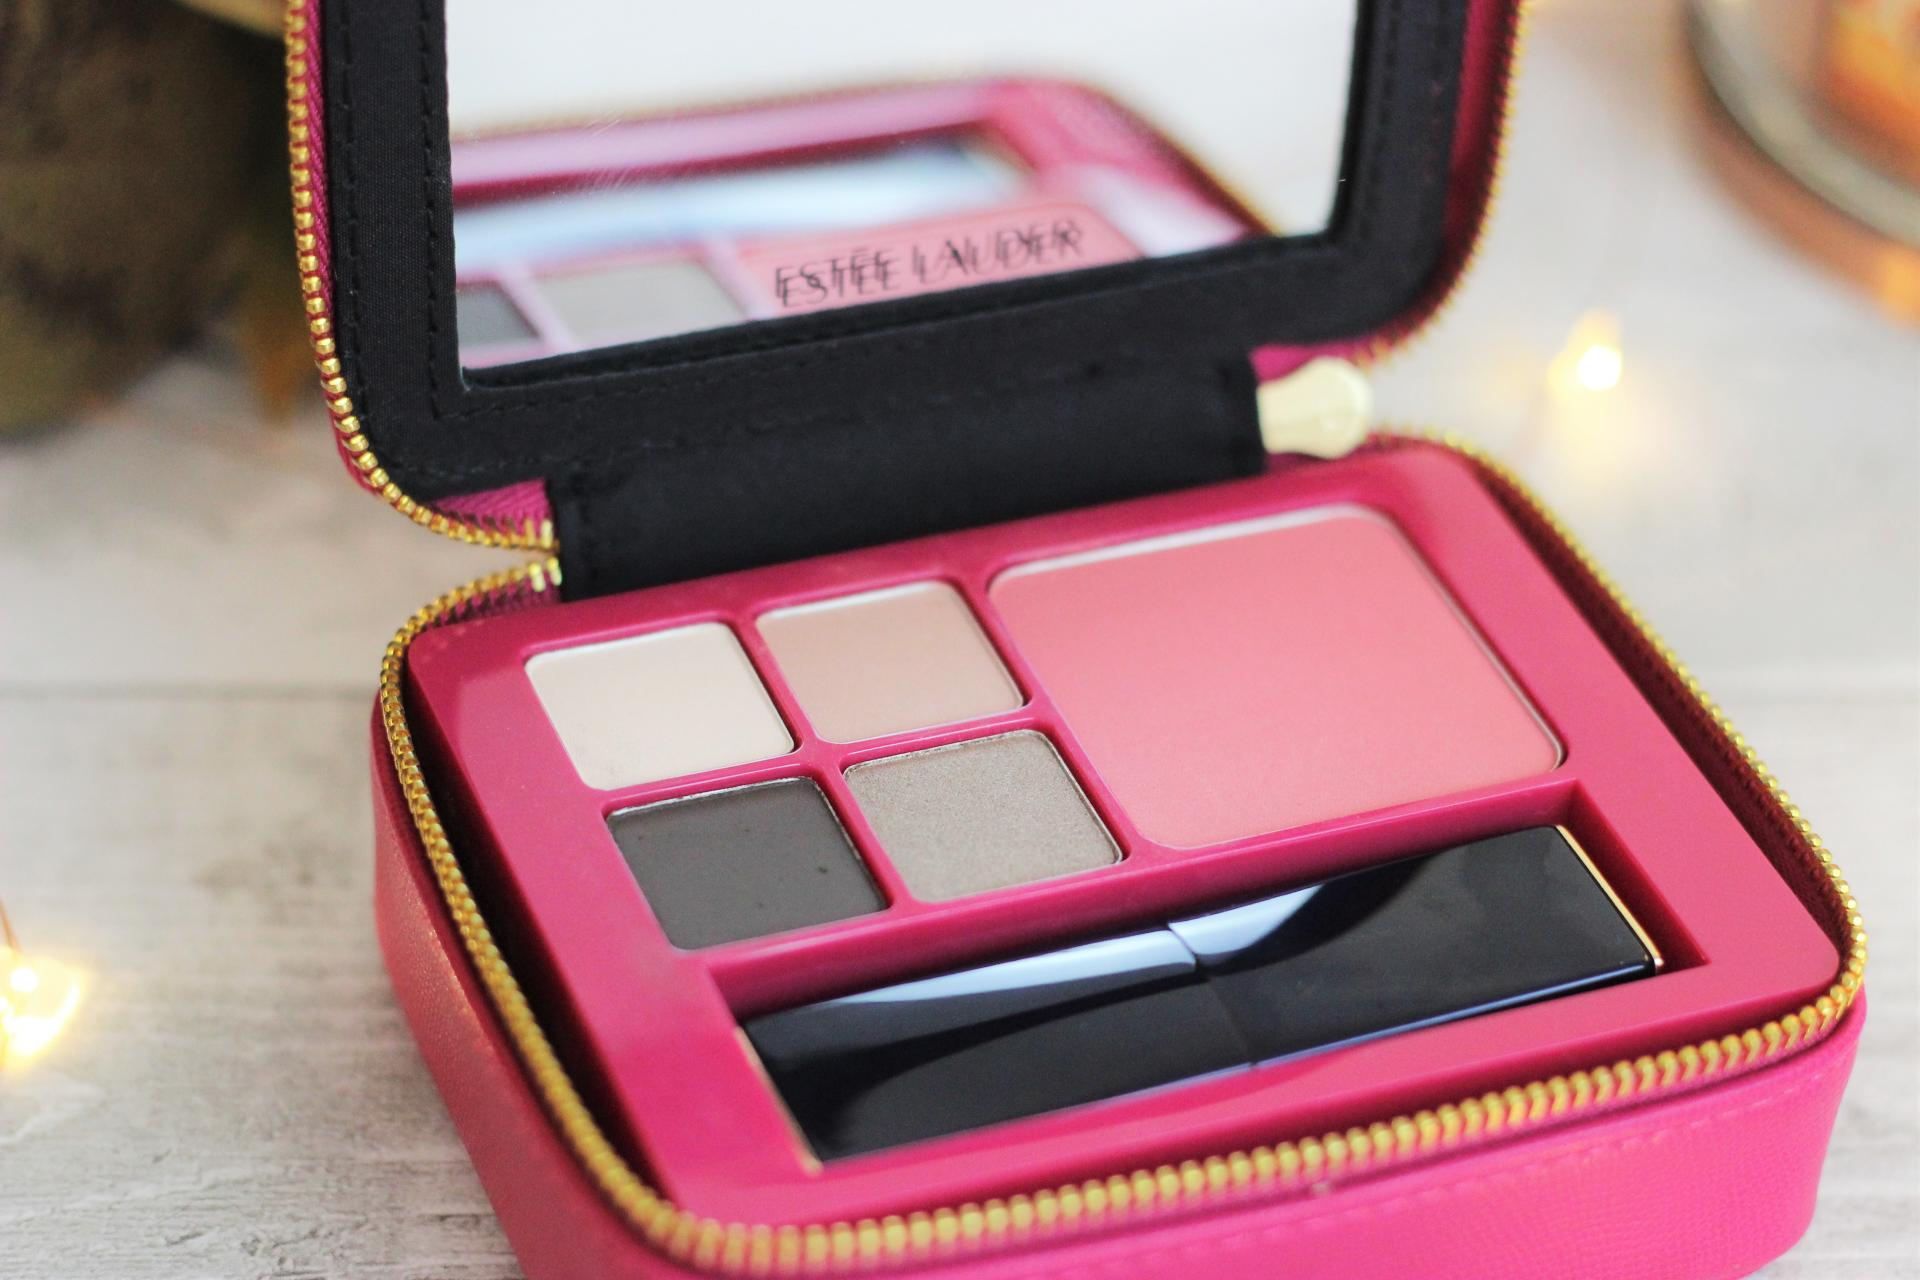 Estée Lauder Pink Perfection Colour Collection